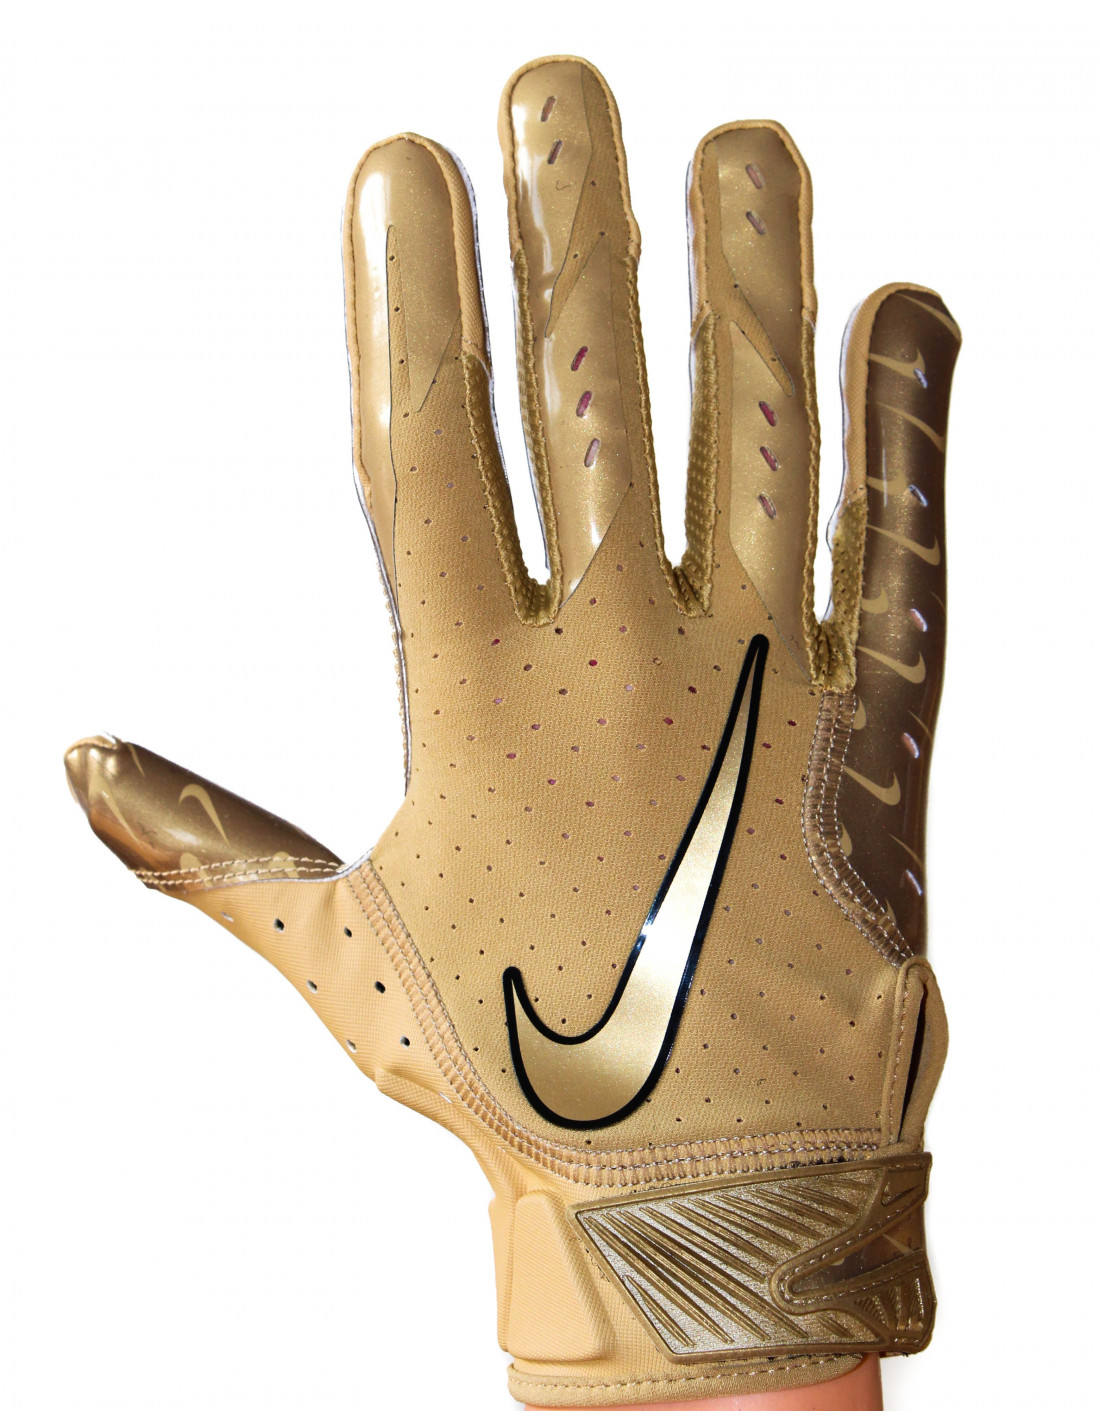 f78d253cce7 Nike Vapor Jet 5 Gold Football Gloves LIMITED EDITION Sport House shop